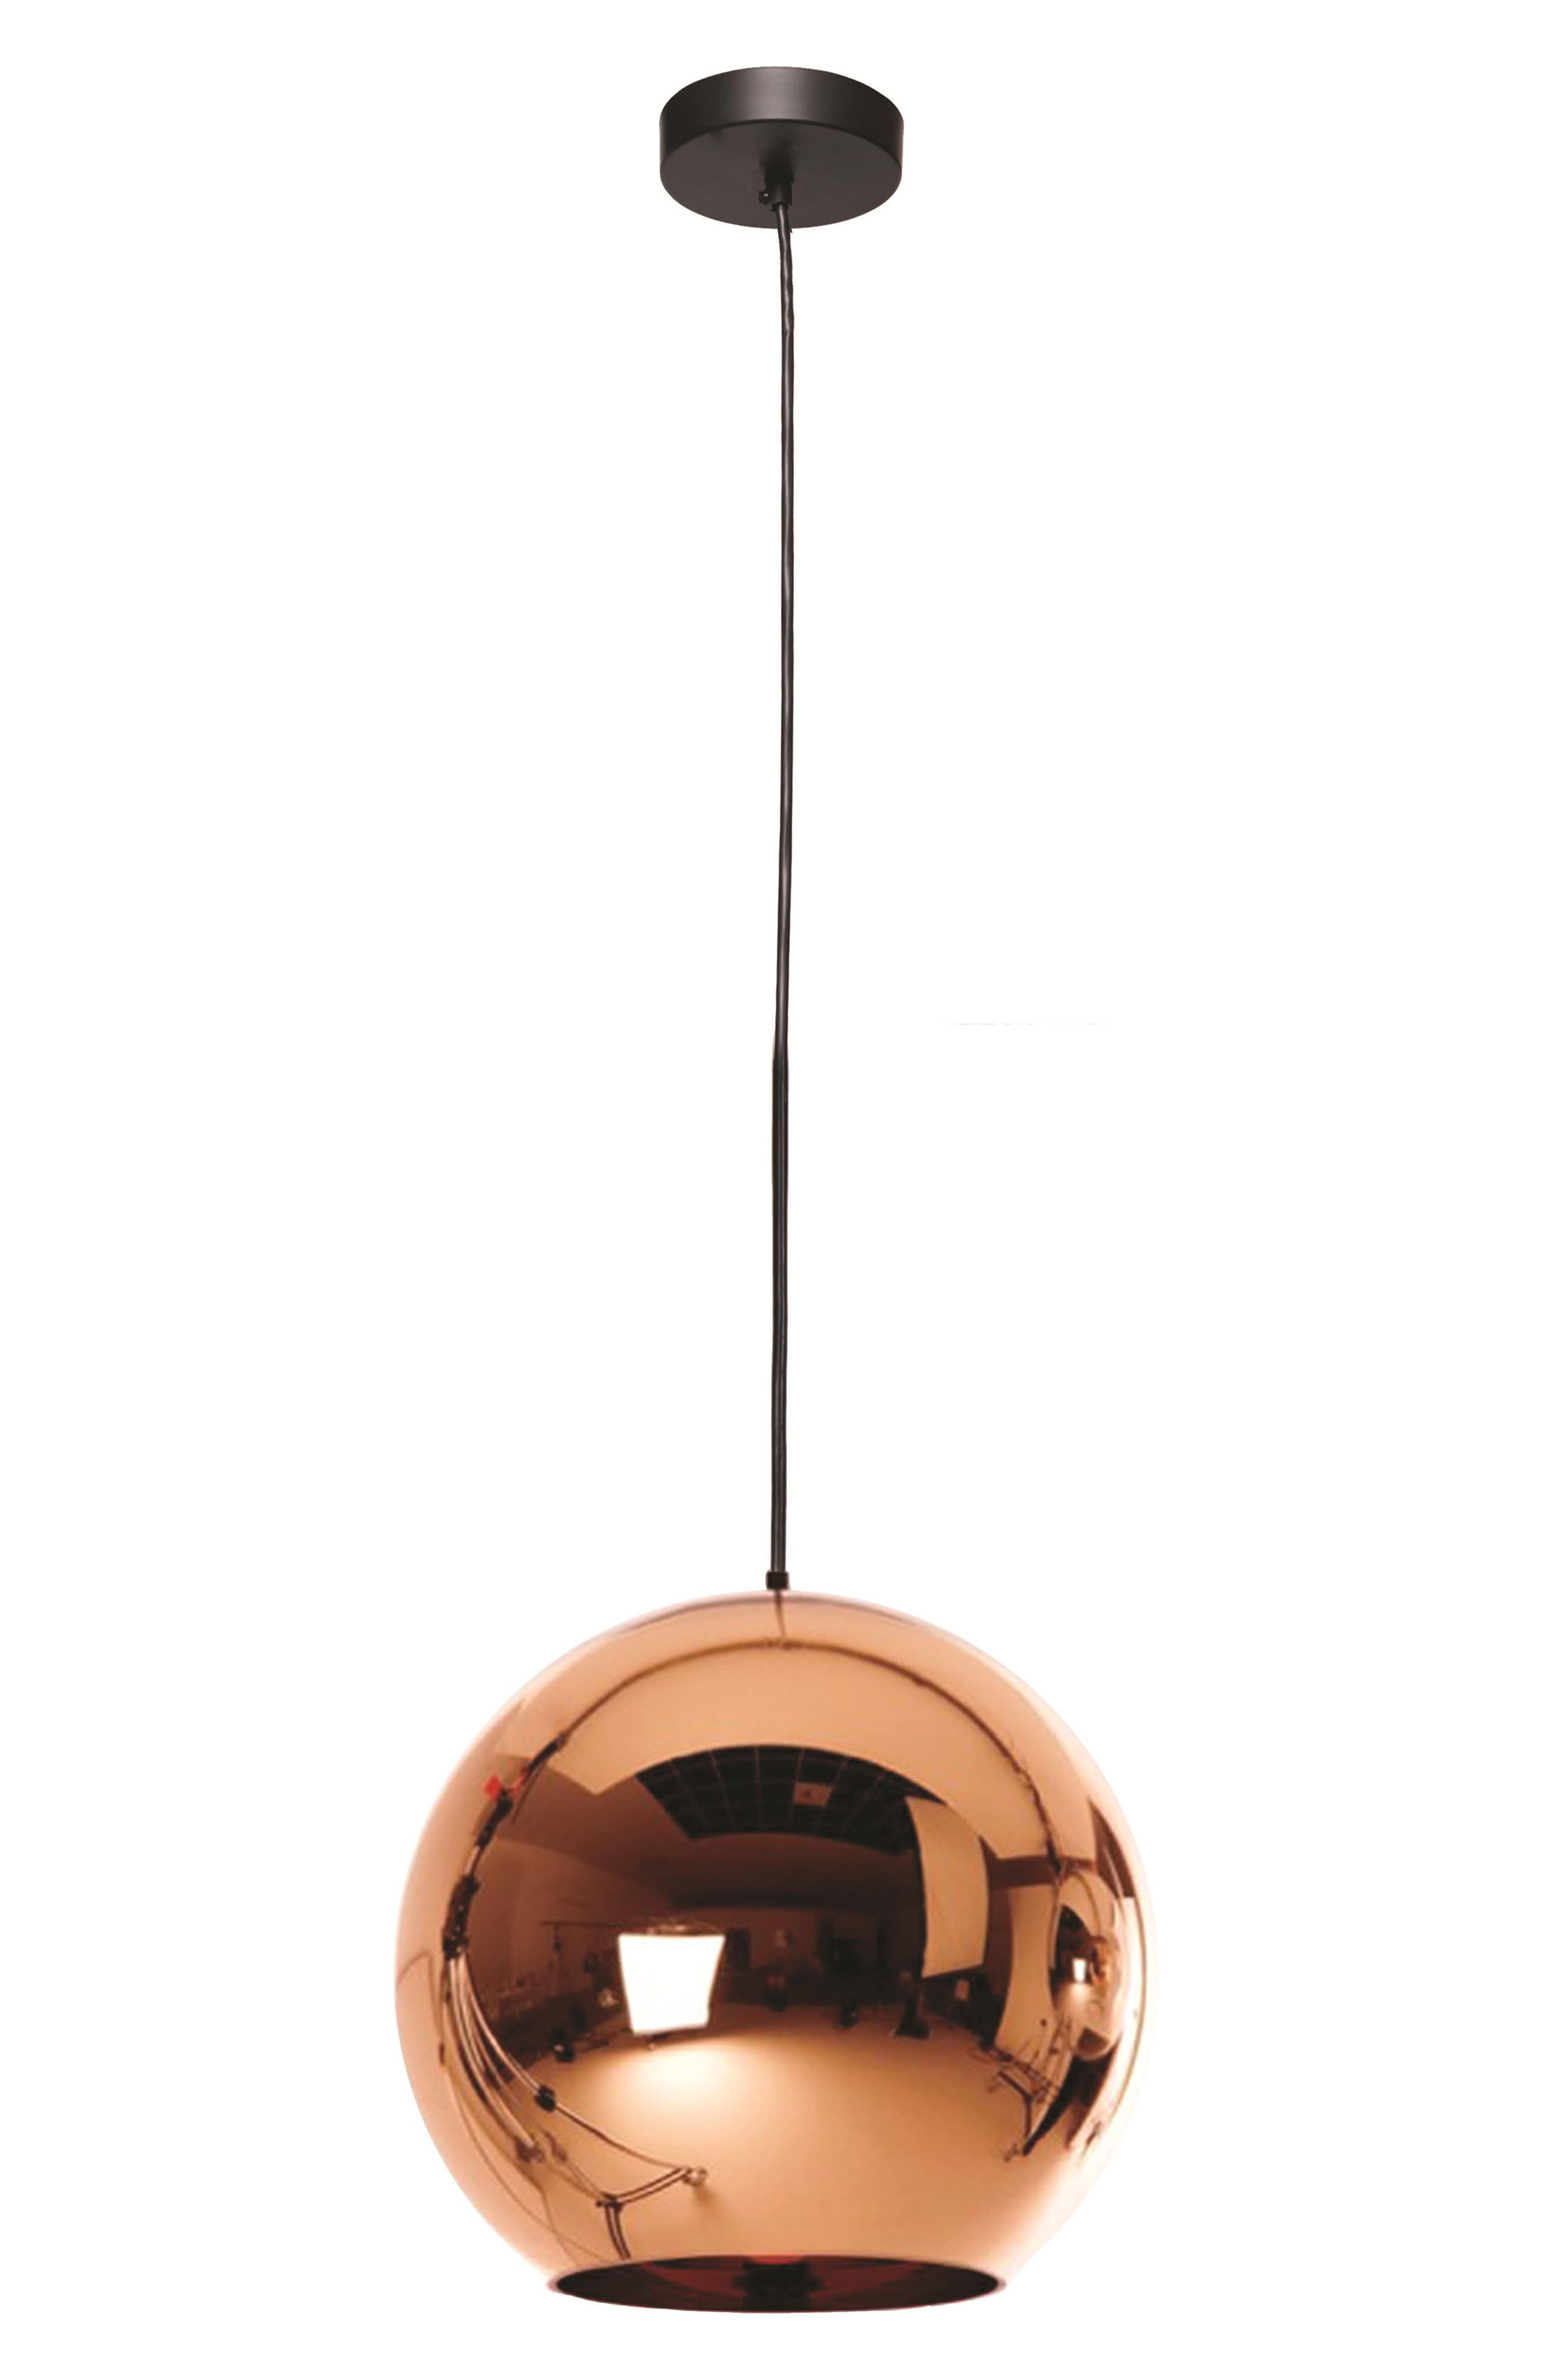 Renwil Copper Ceiling Light Fixture